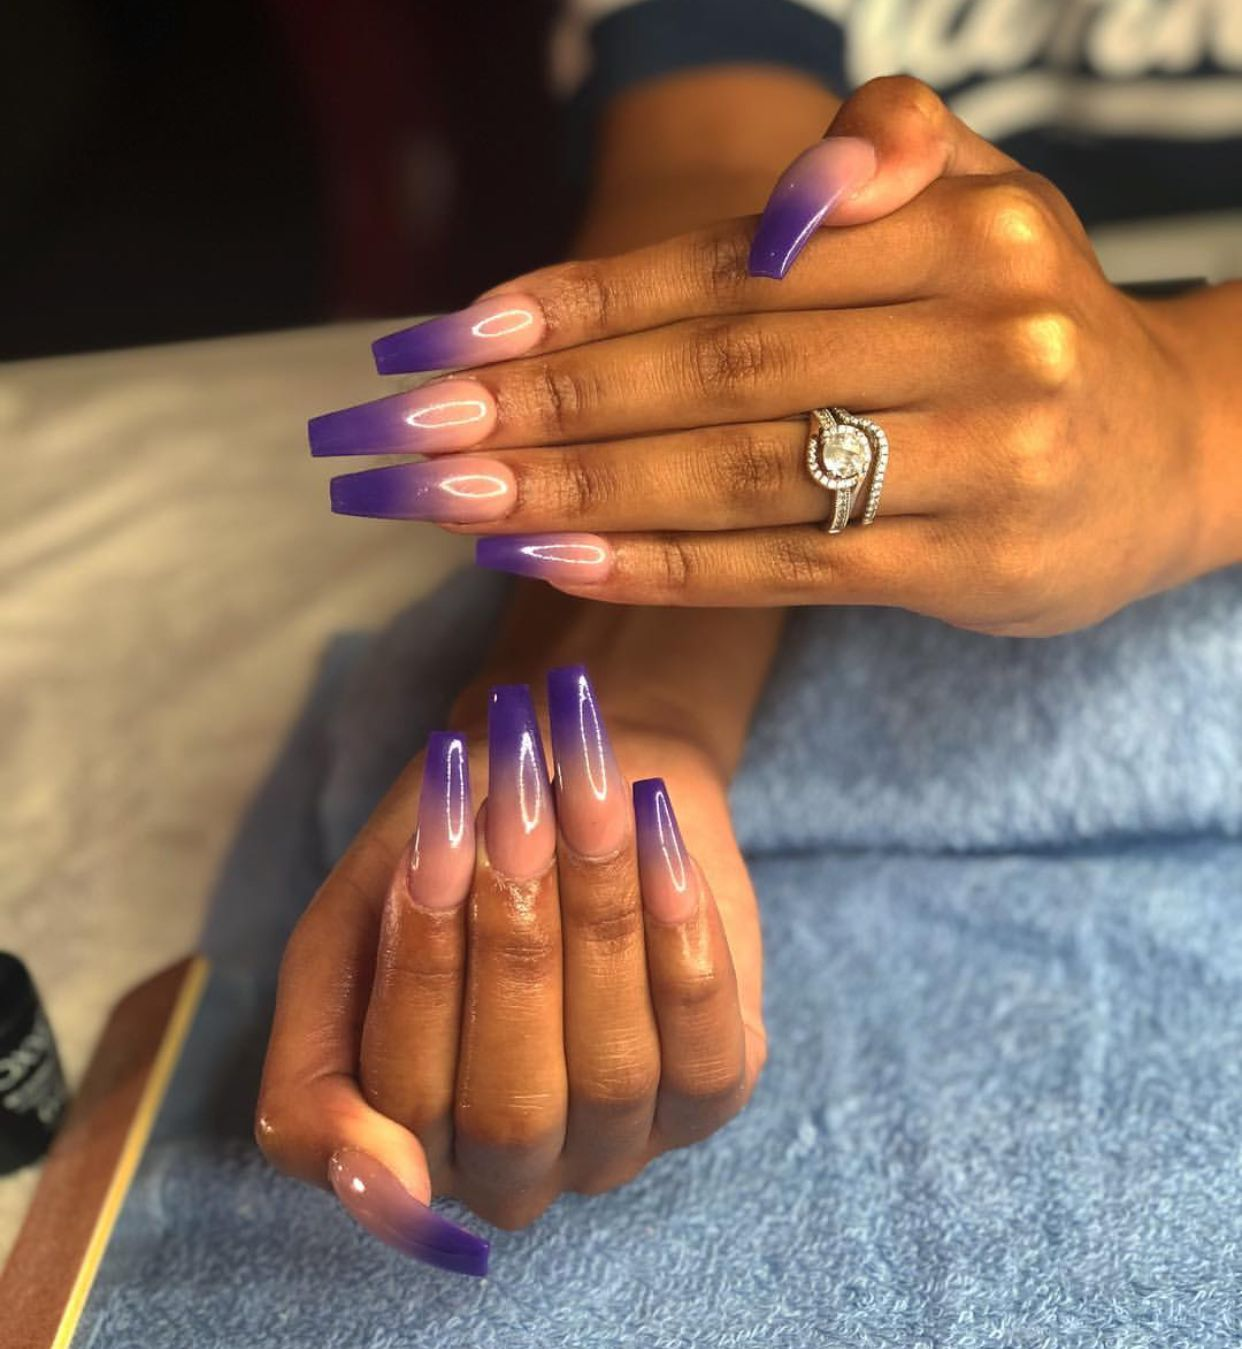 Semi-permanent varnish, false nails, patches: which